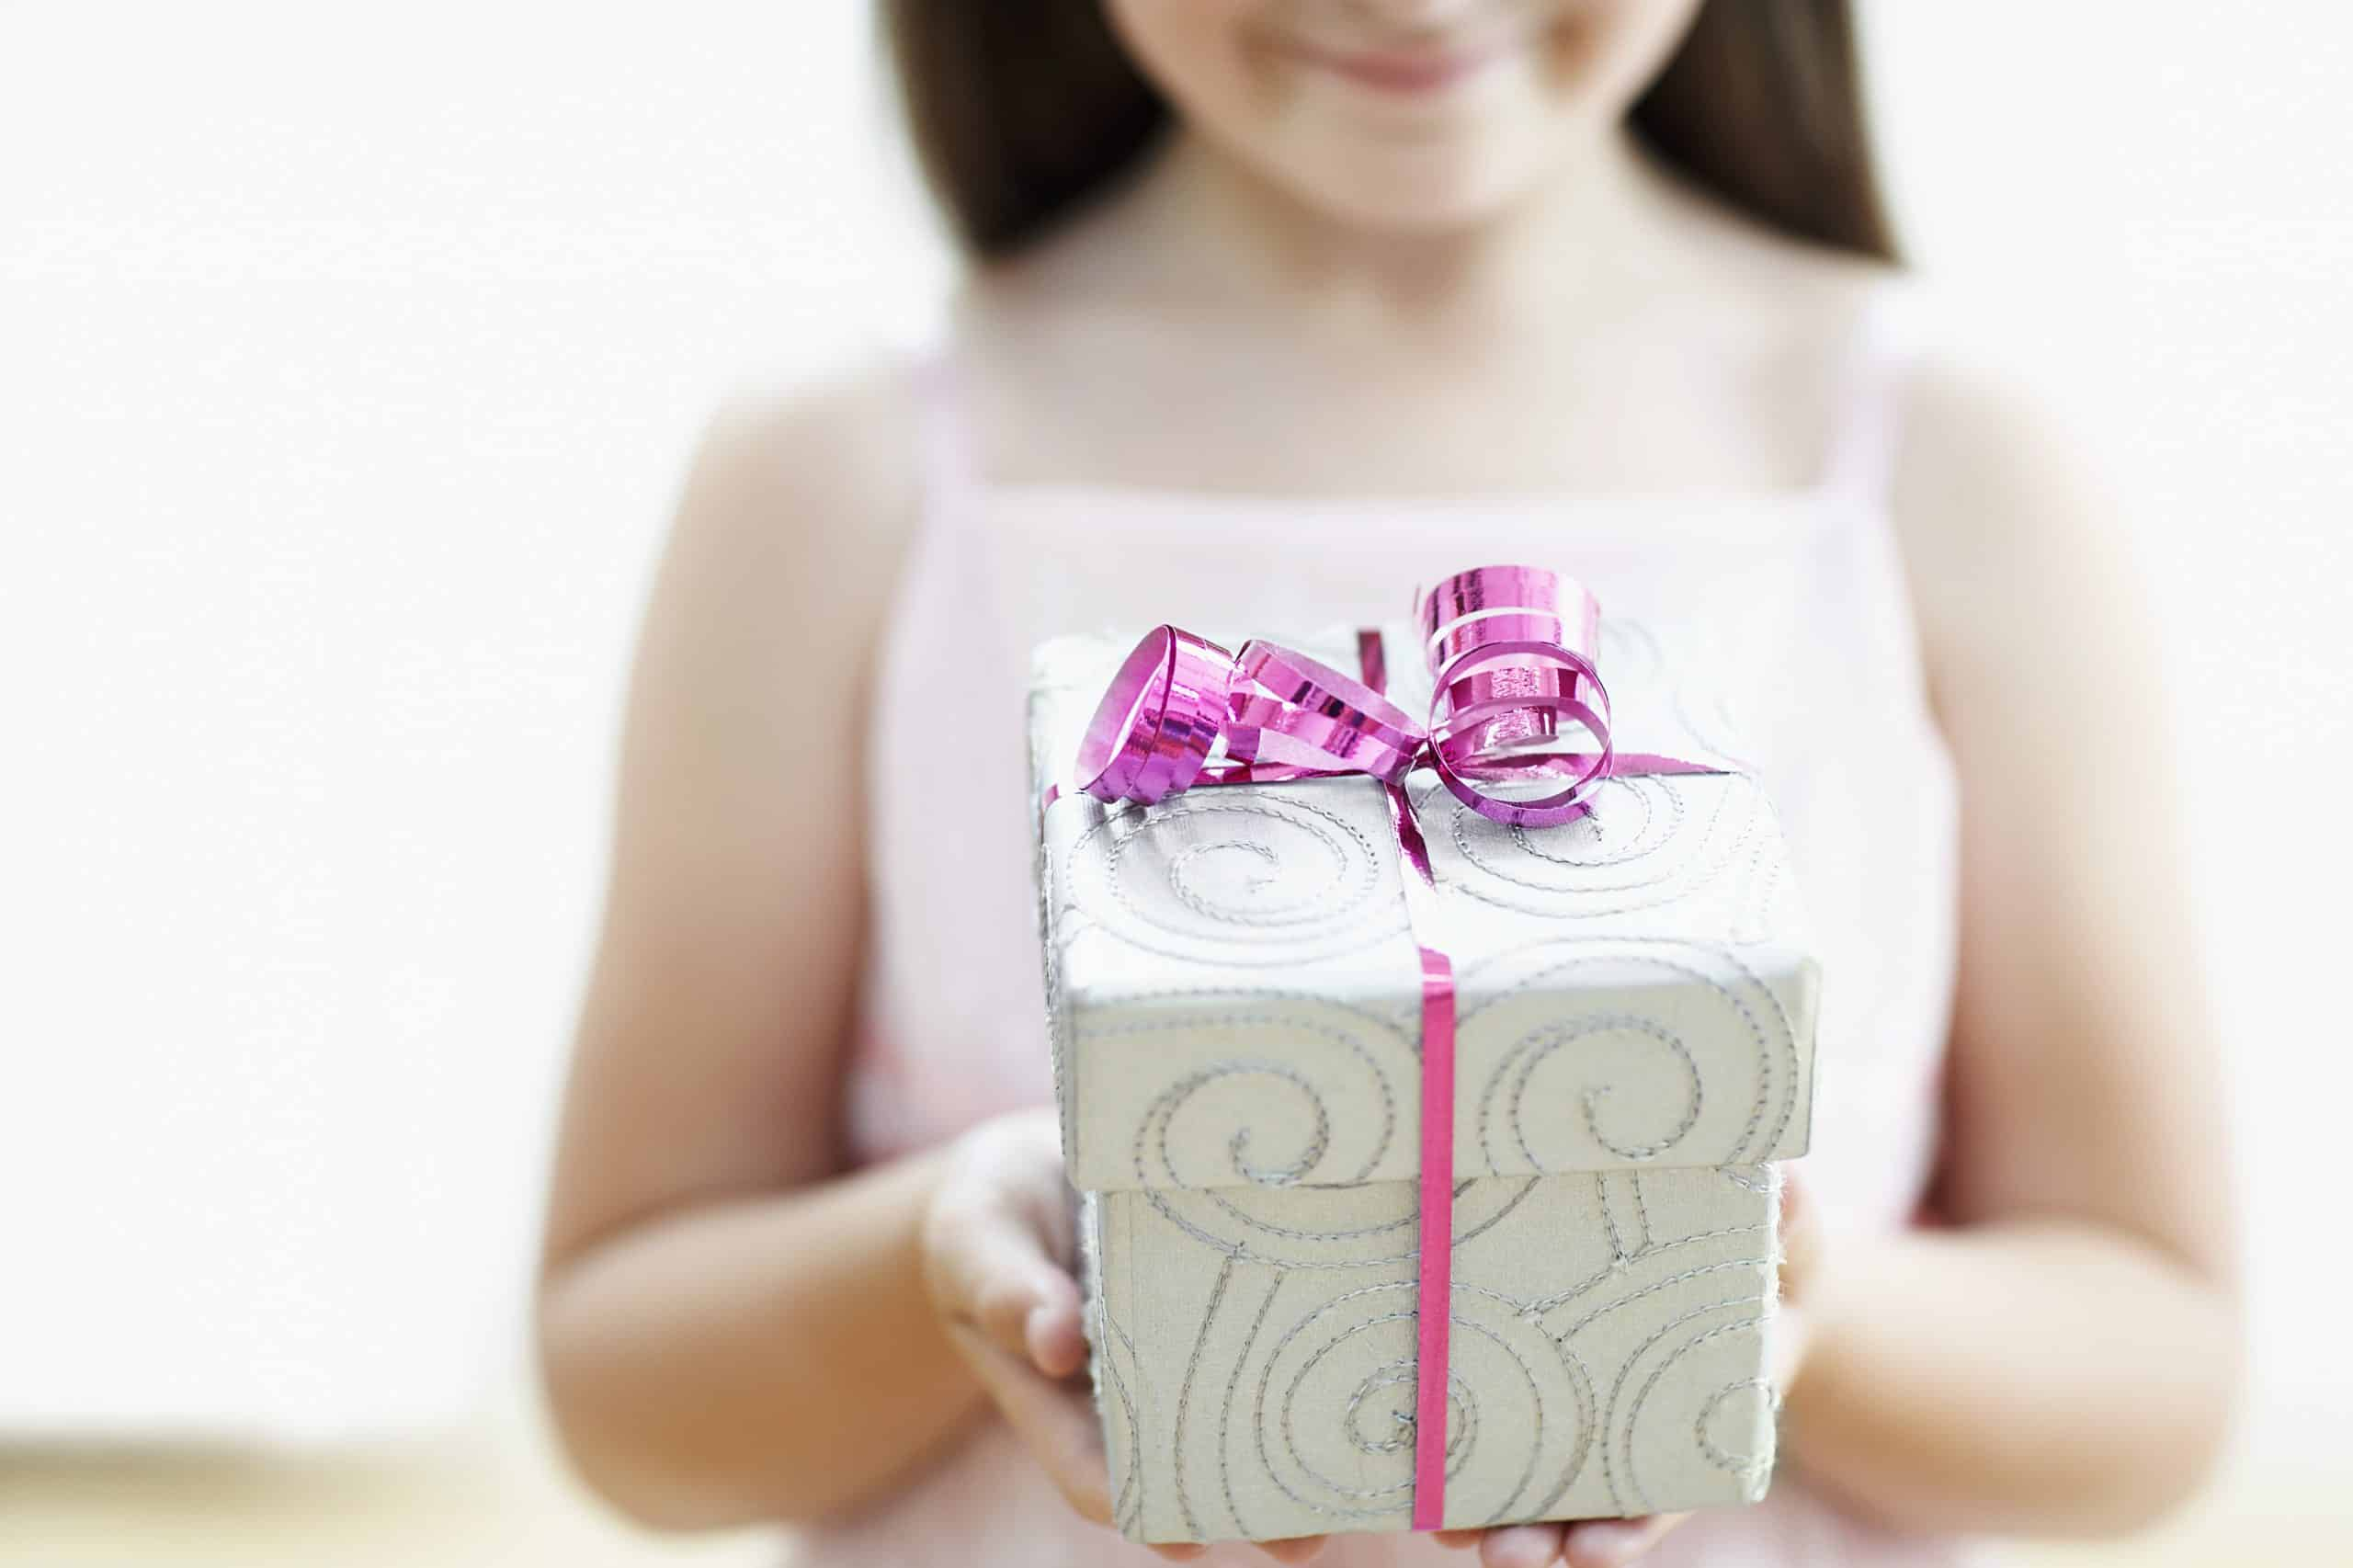 a young girl holding out a gift